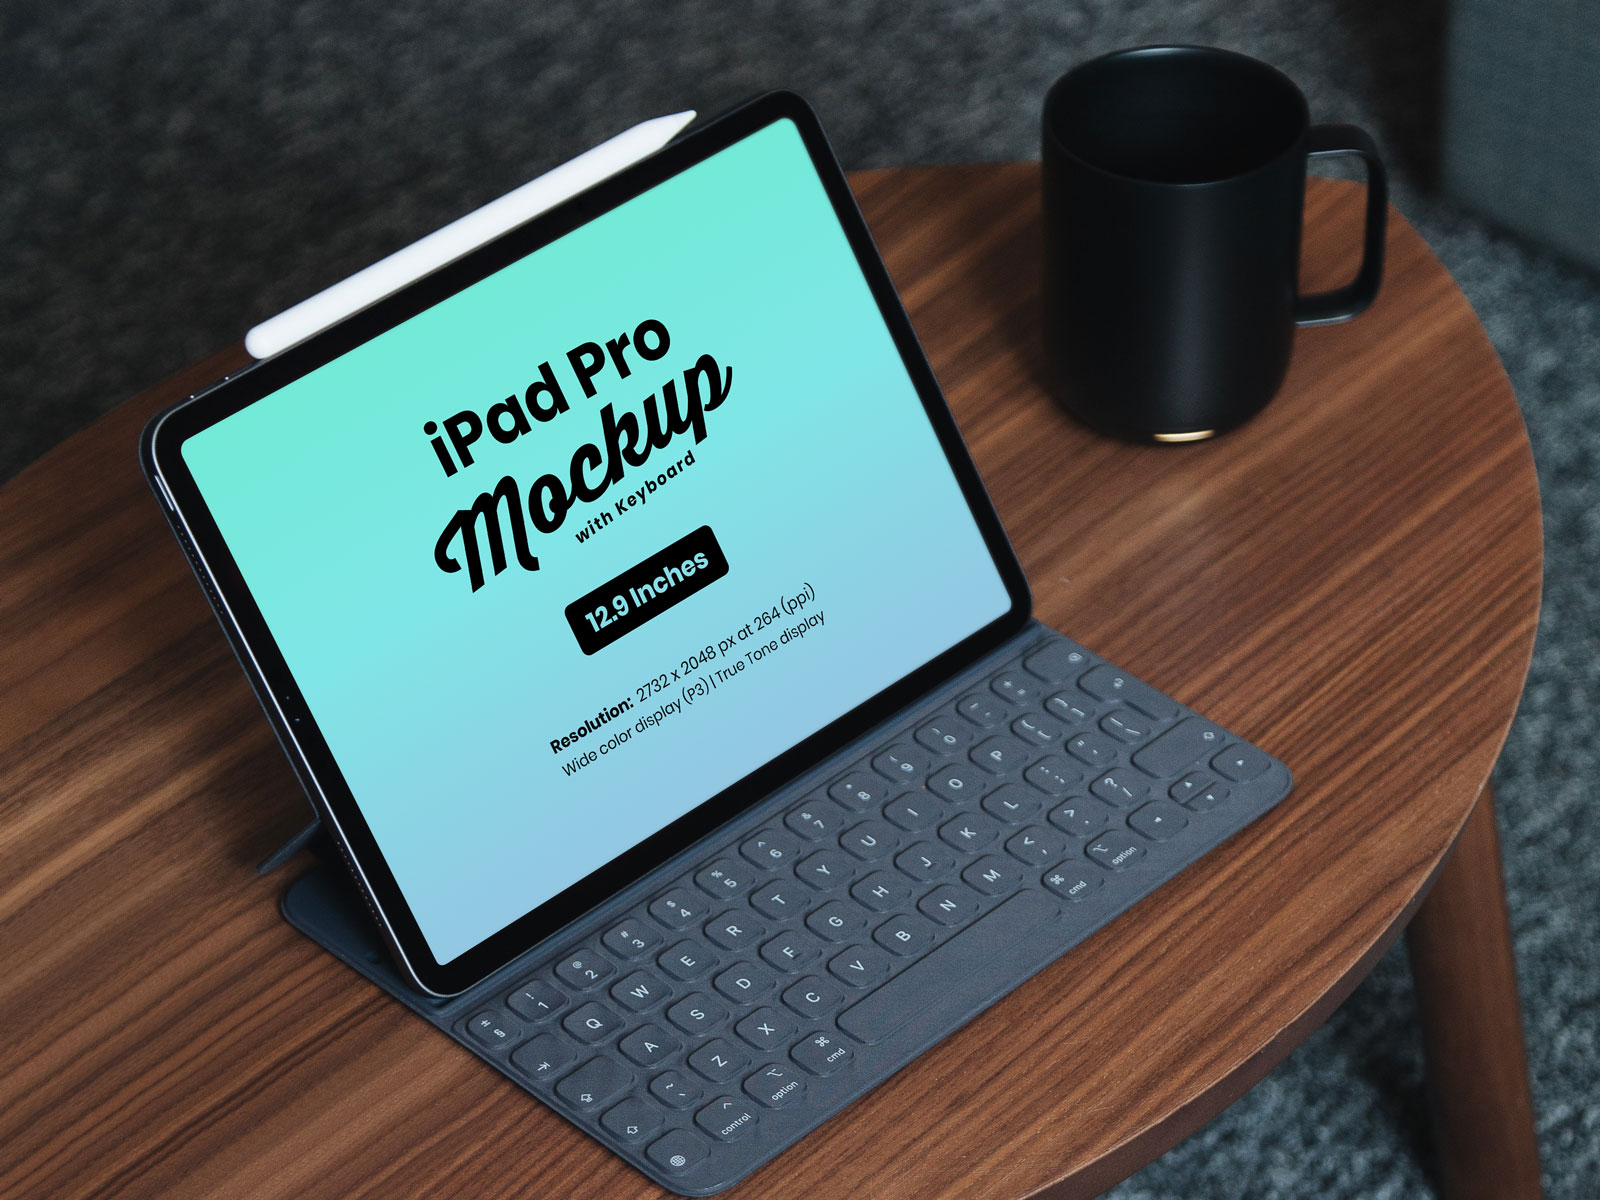 Free iPad Pro Mockup with Keyboard